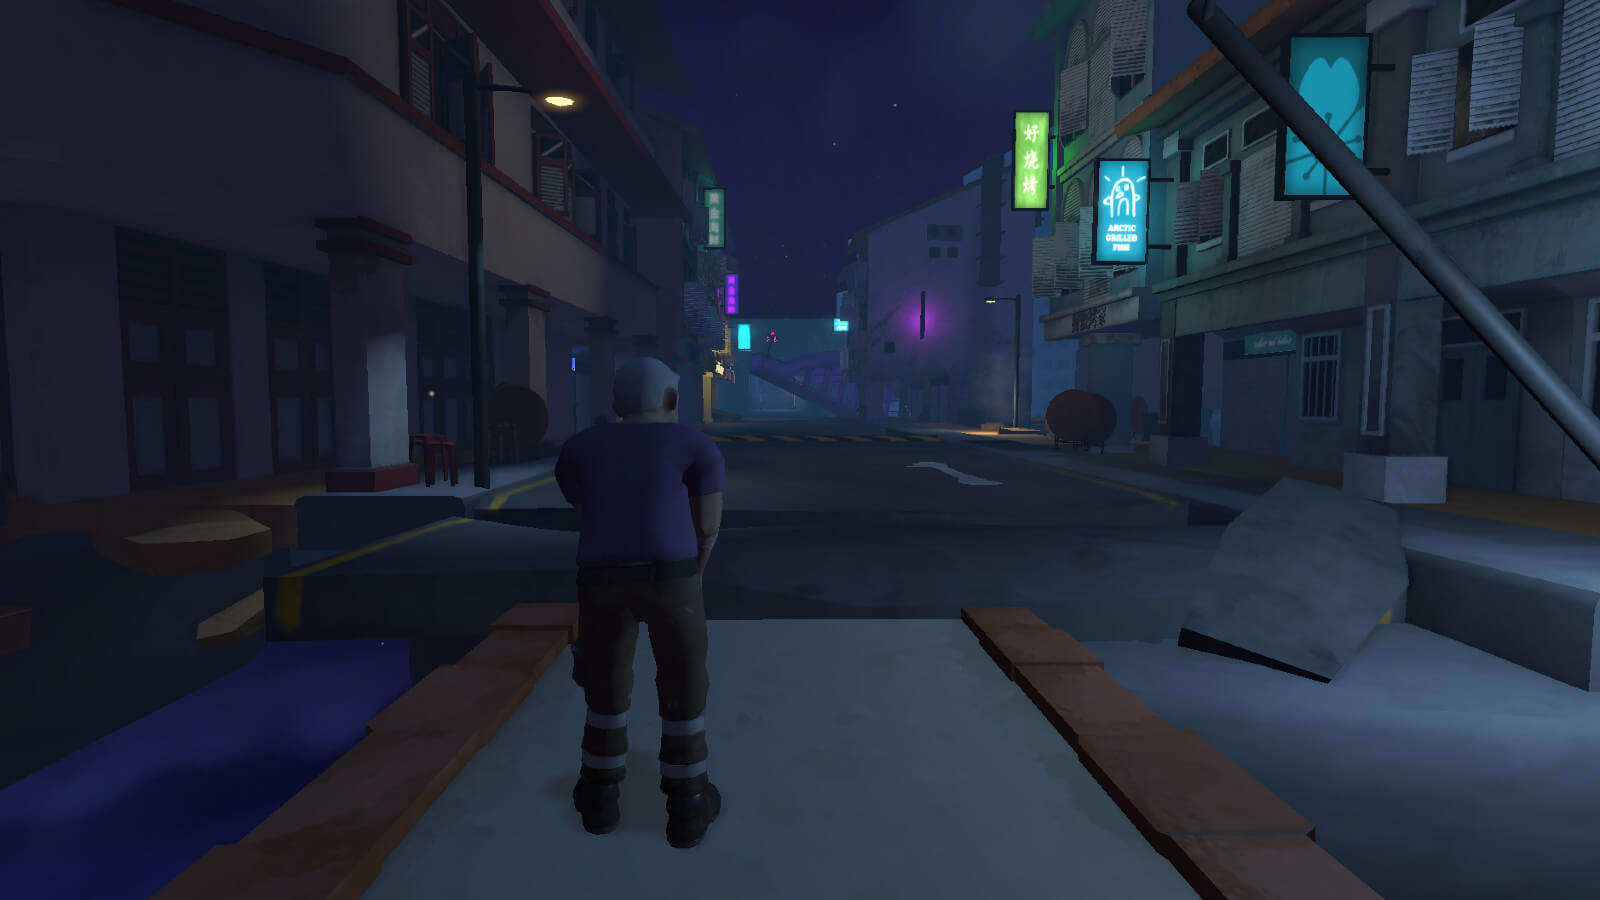 Man standing while looking up at dark empty street